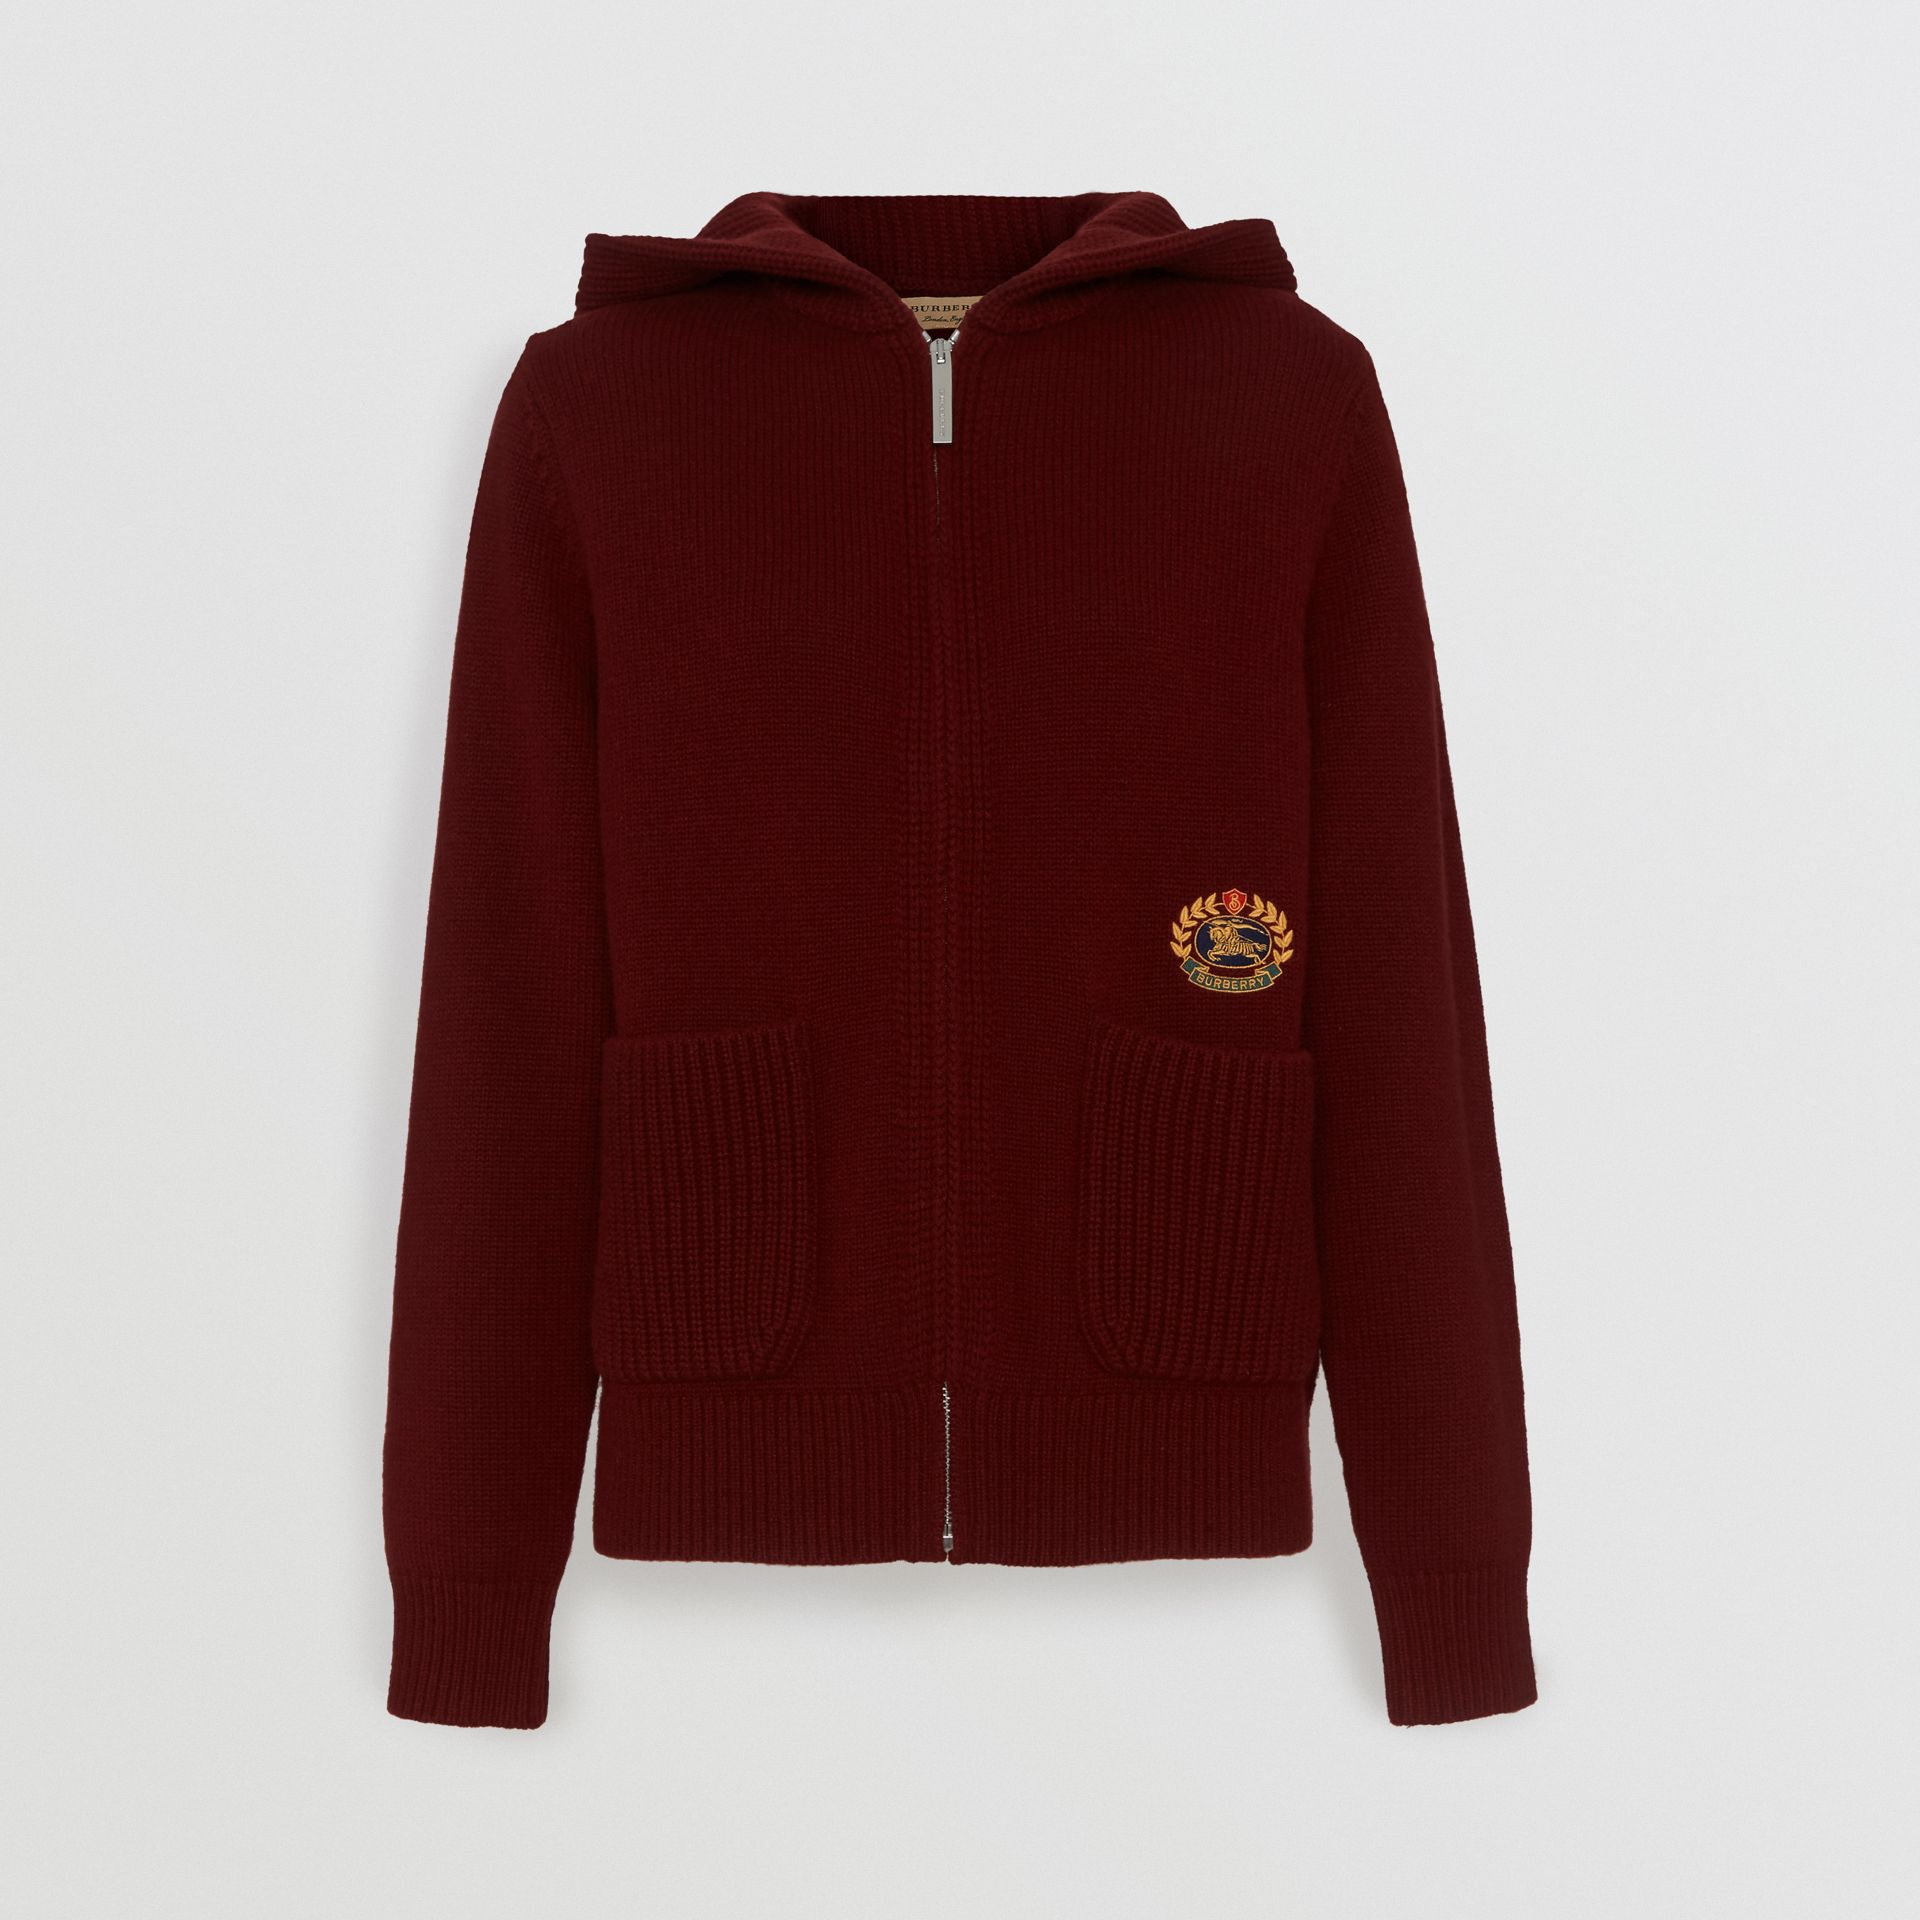 Embroidered Archive Logo Cashmere Hooded Top in Crimson - Women | Burberry - gallery image 3